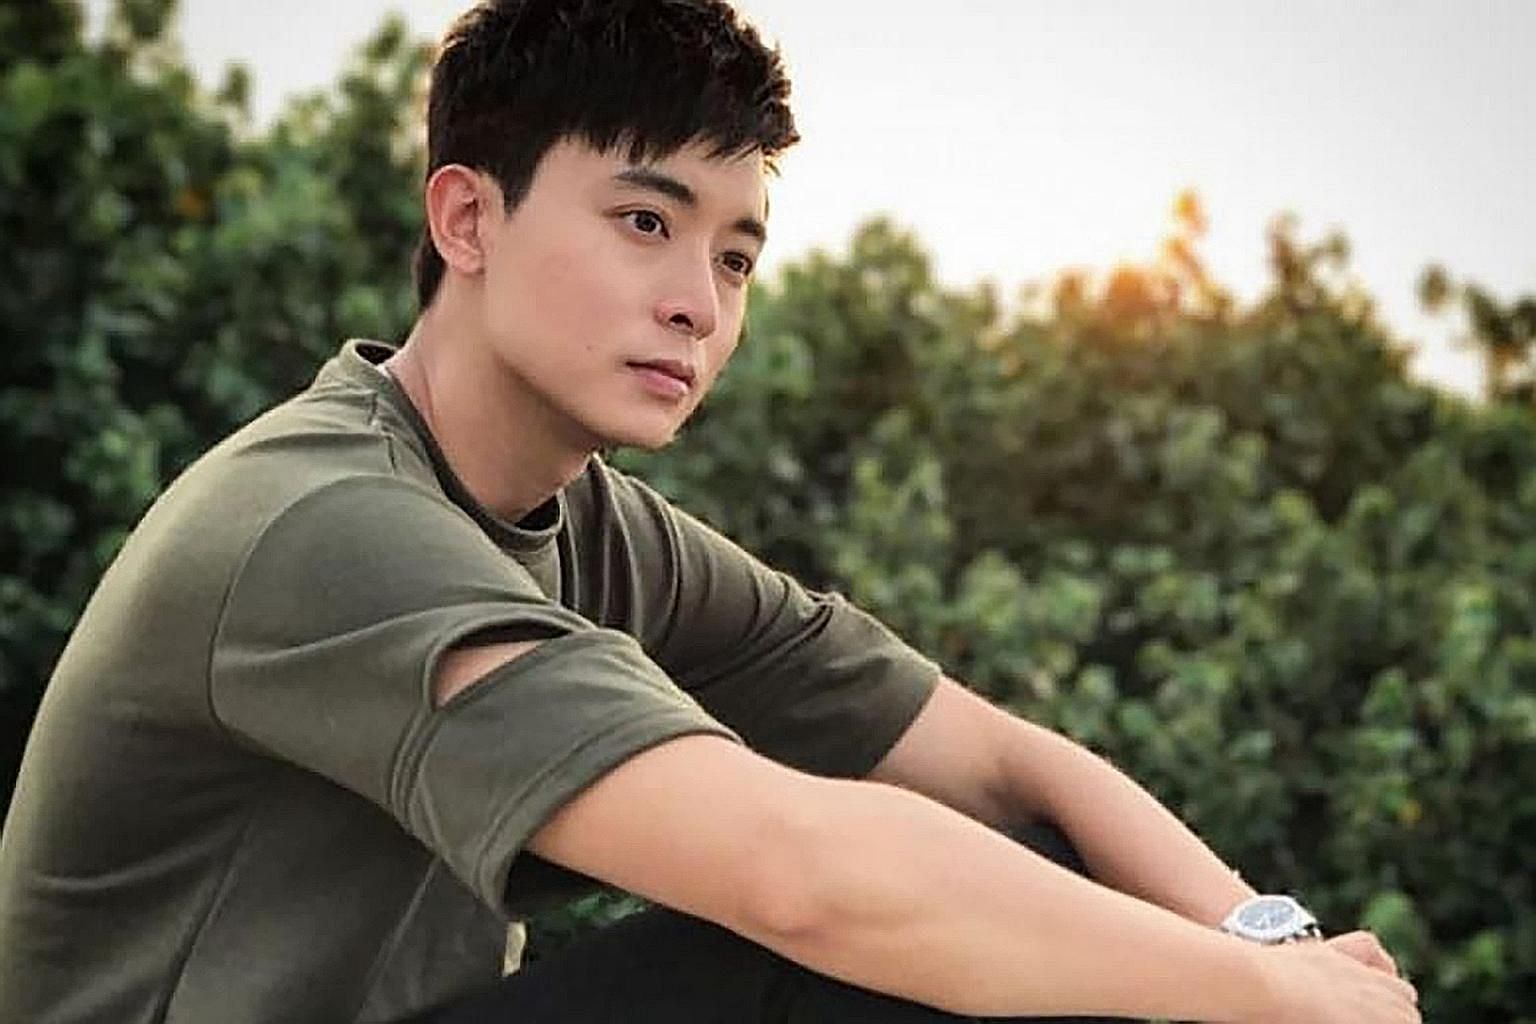 Actor Aloysius Pang died last night at Waikato Hospital in New Zealand, where he had surgery following an accident during an SAF exercise.